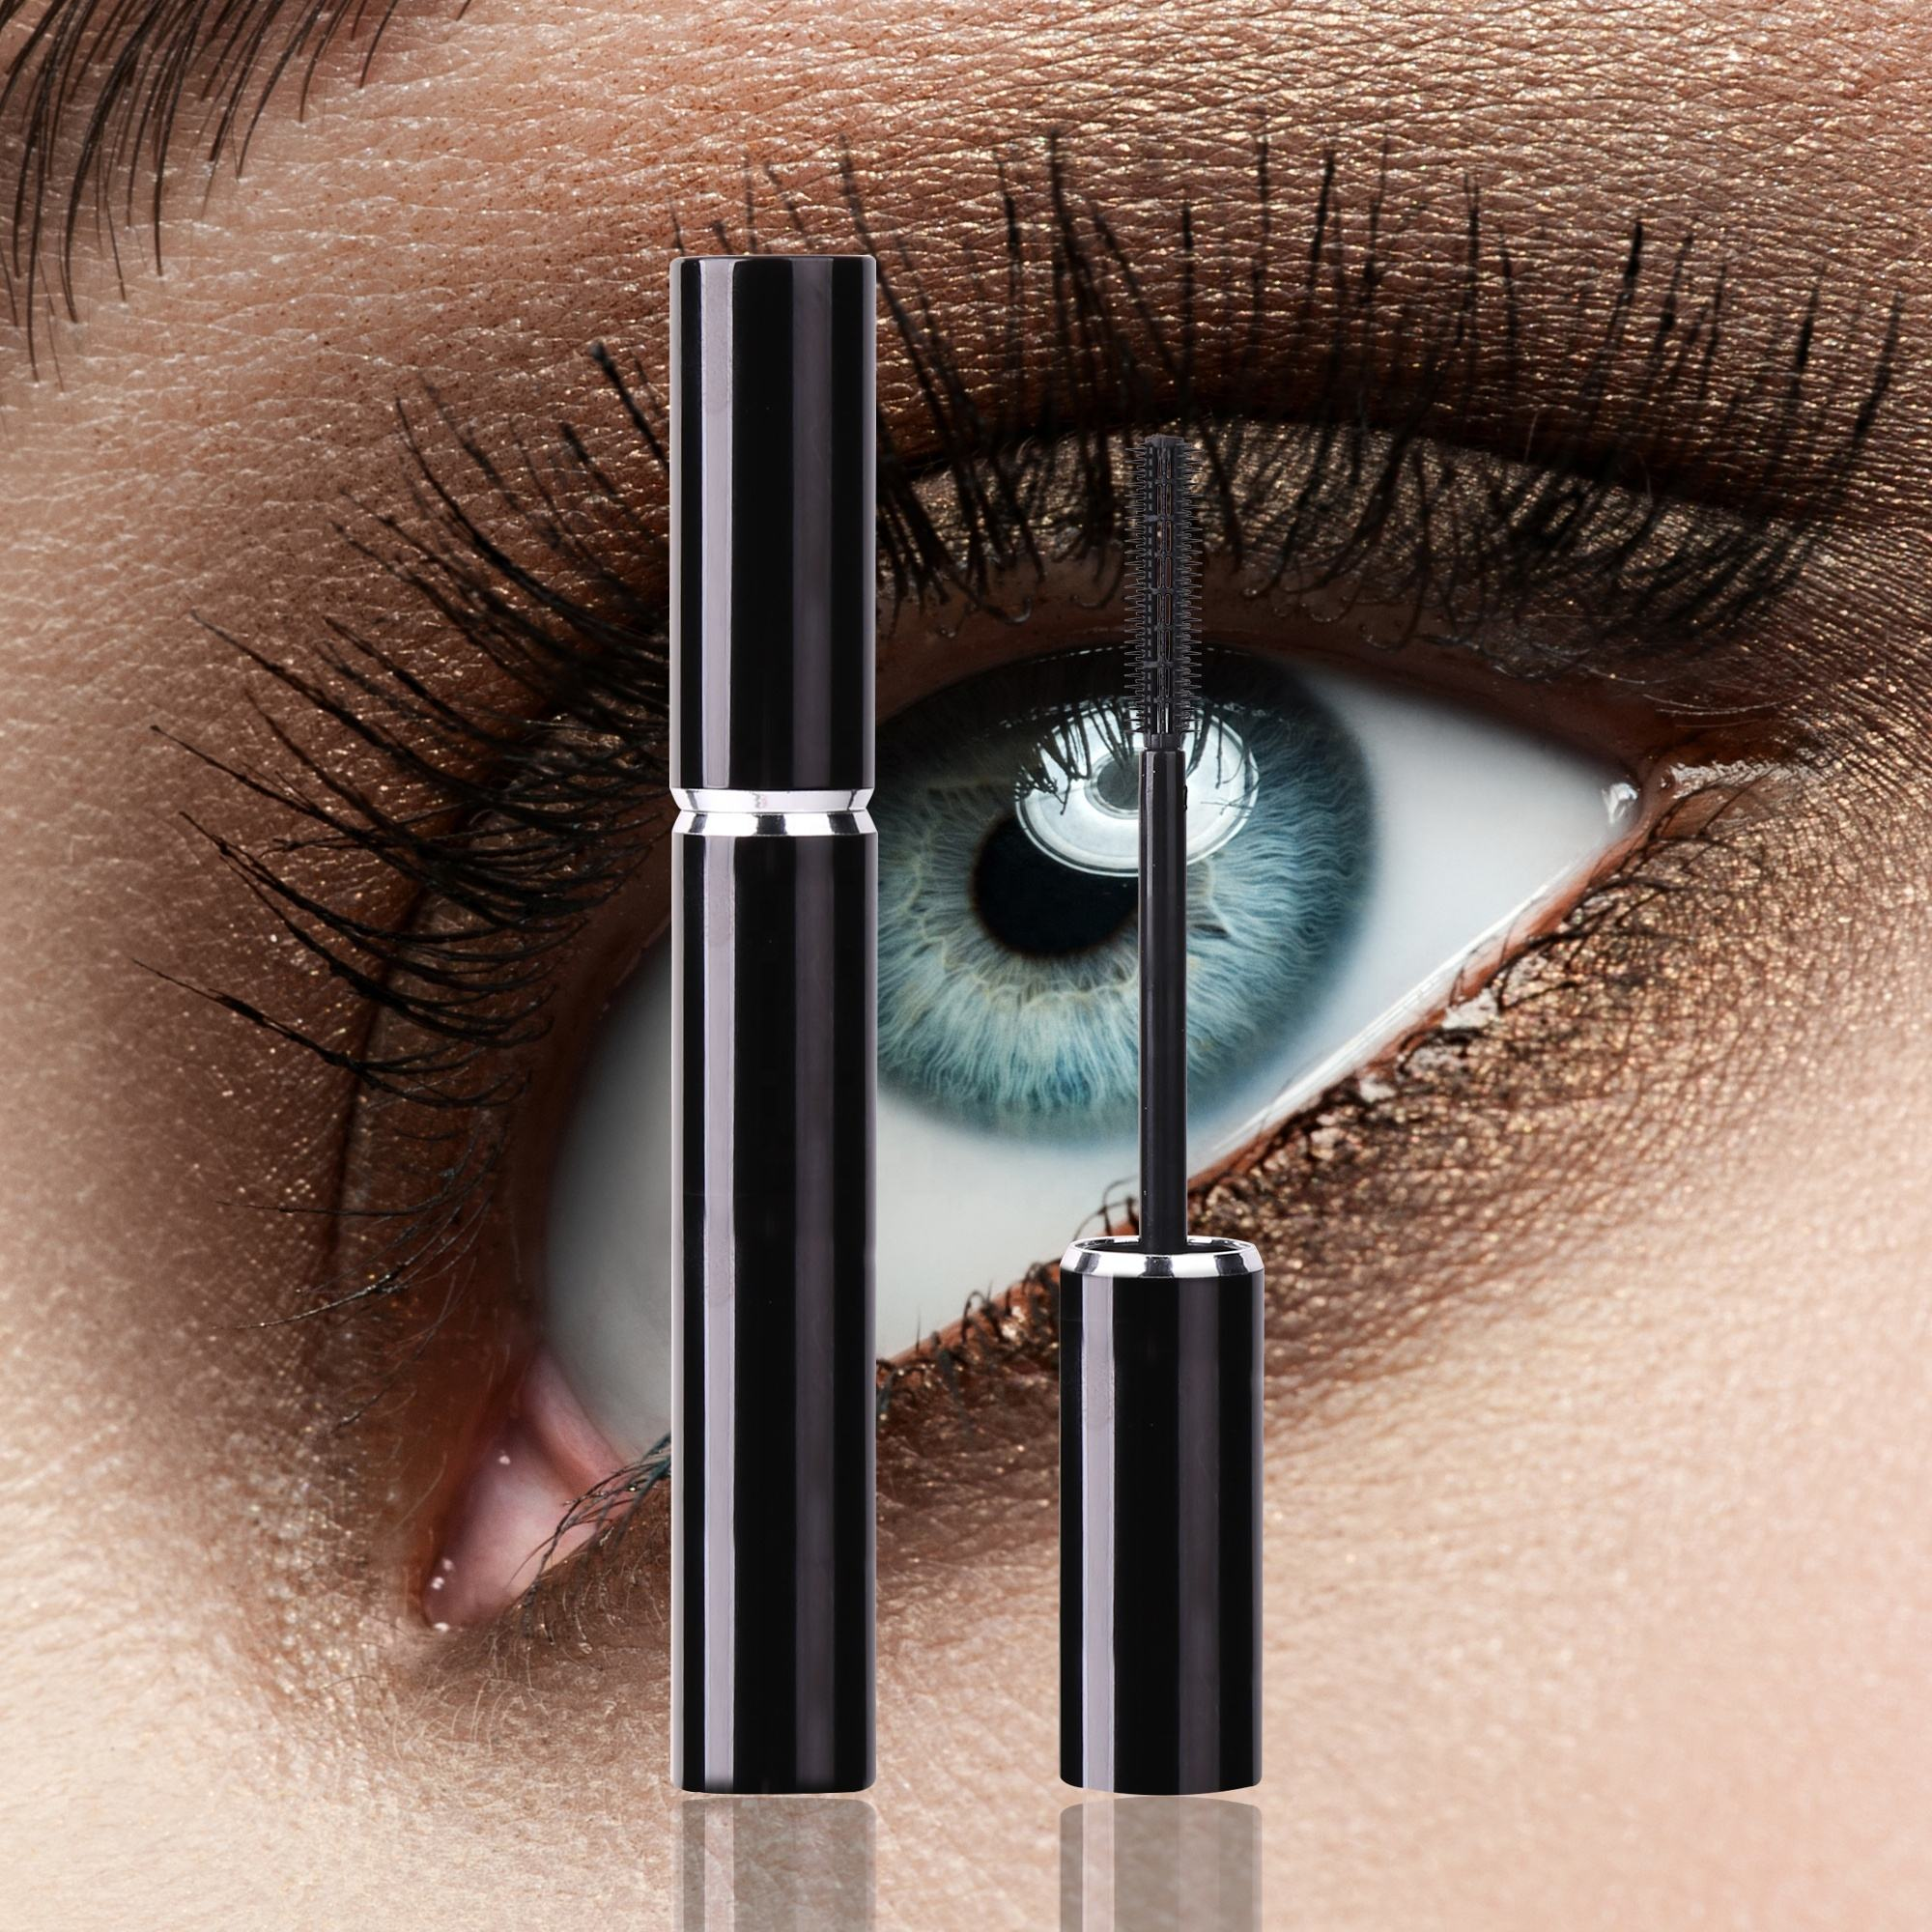 A47 Long Lasting organic mascara private label waterproof natural mascara high quality makeup mascara